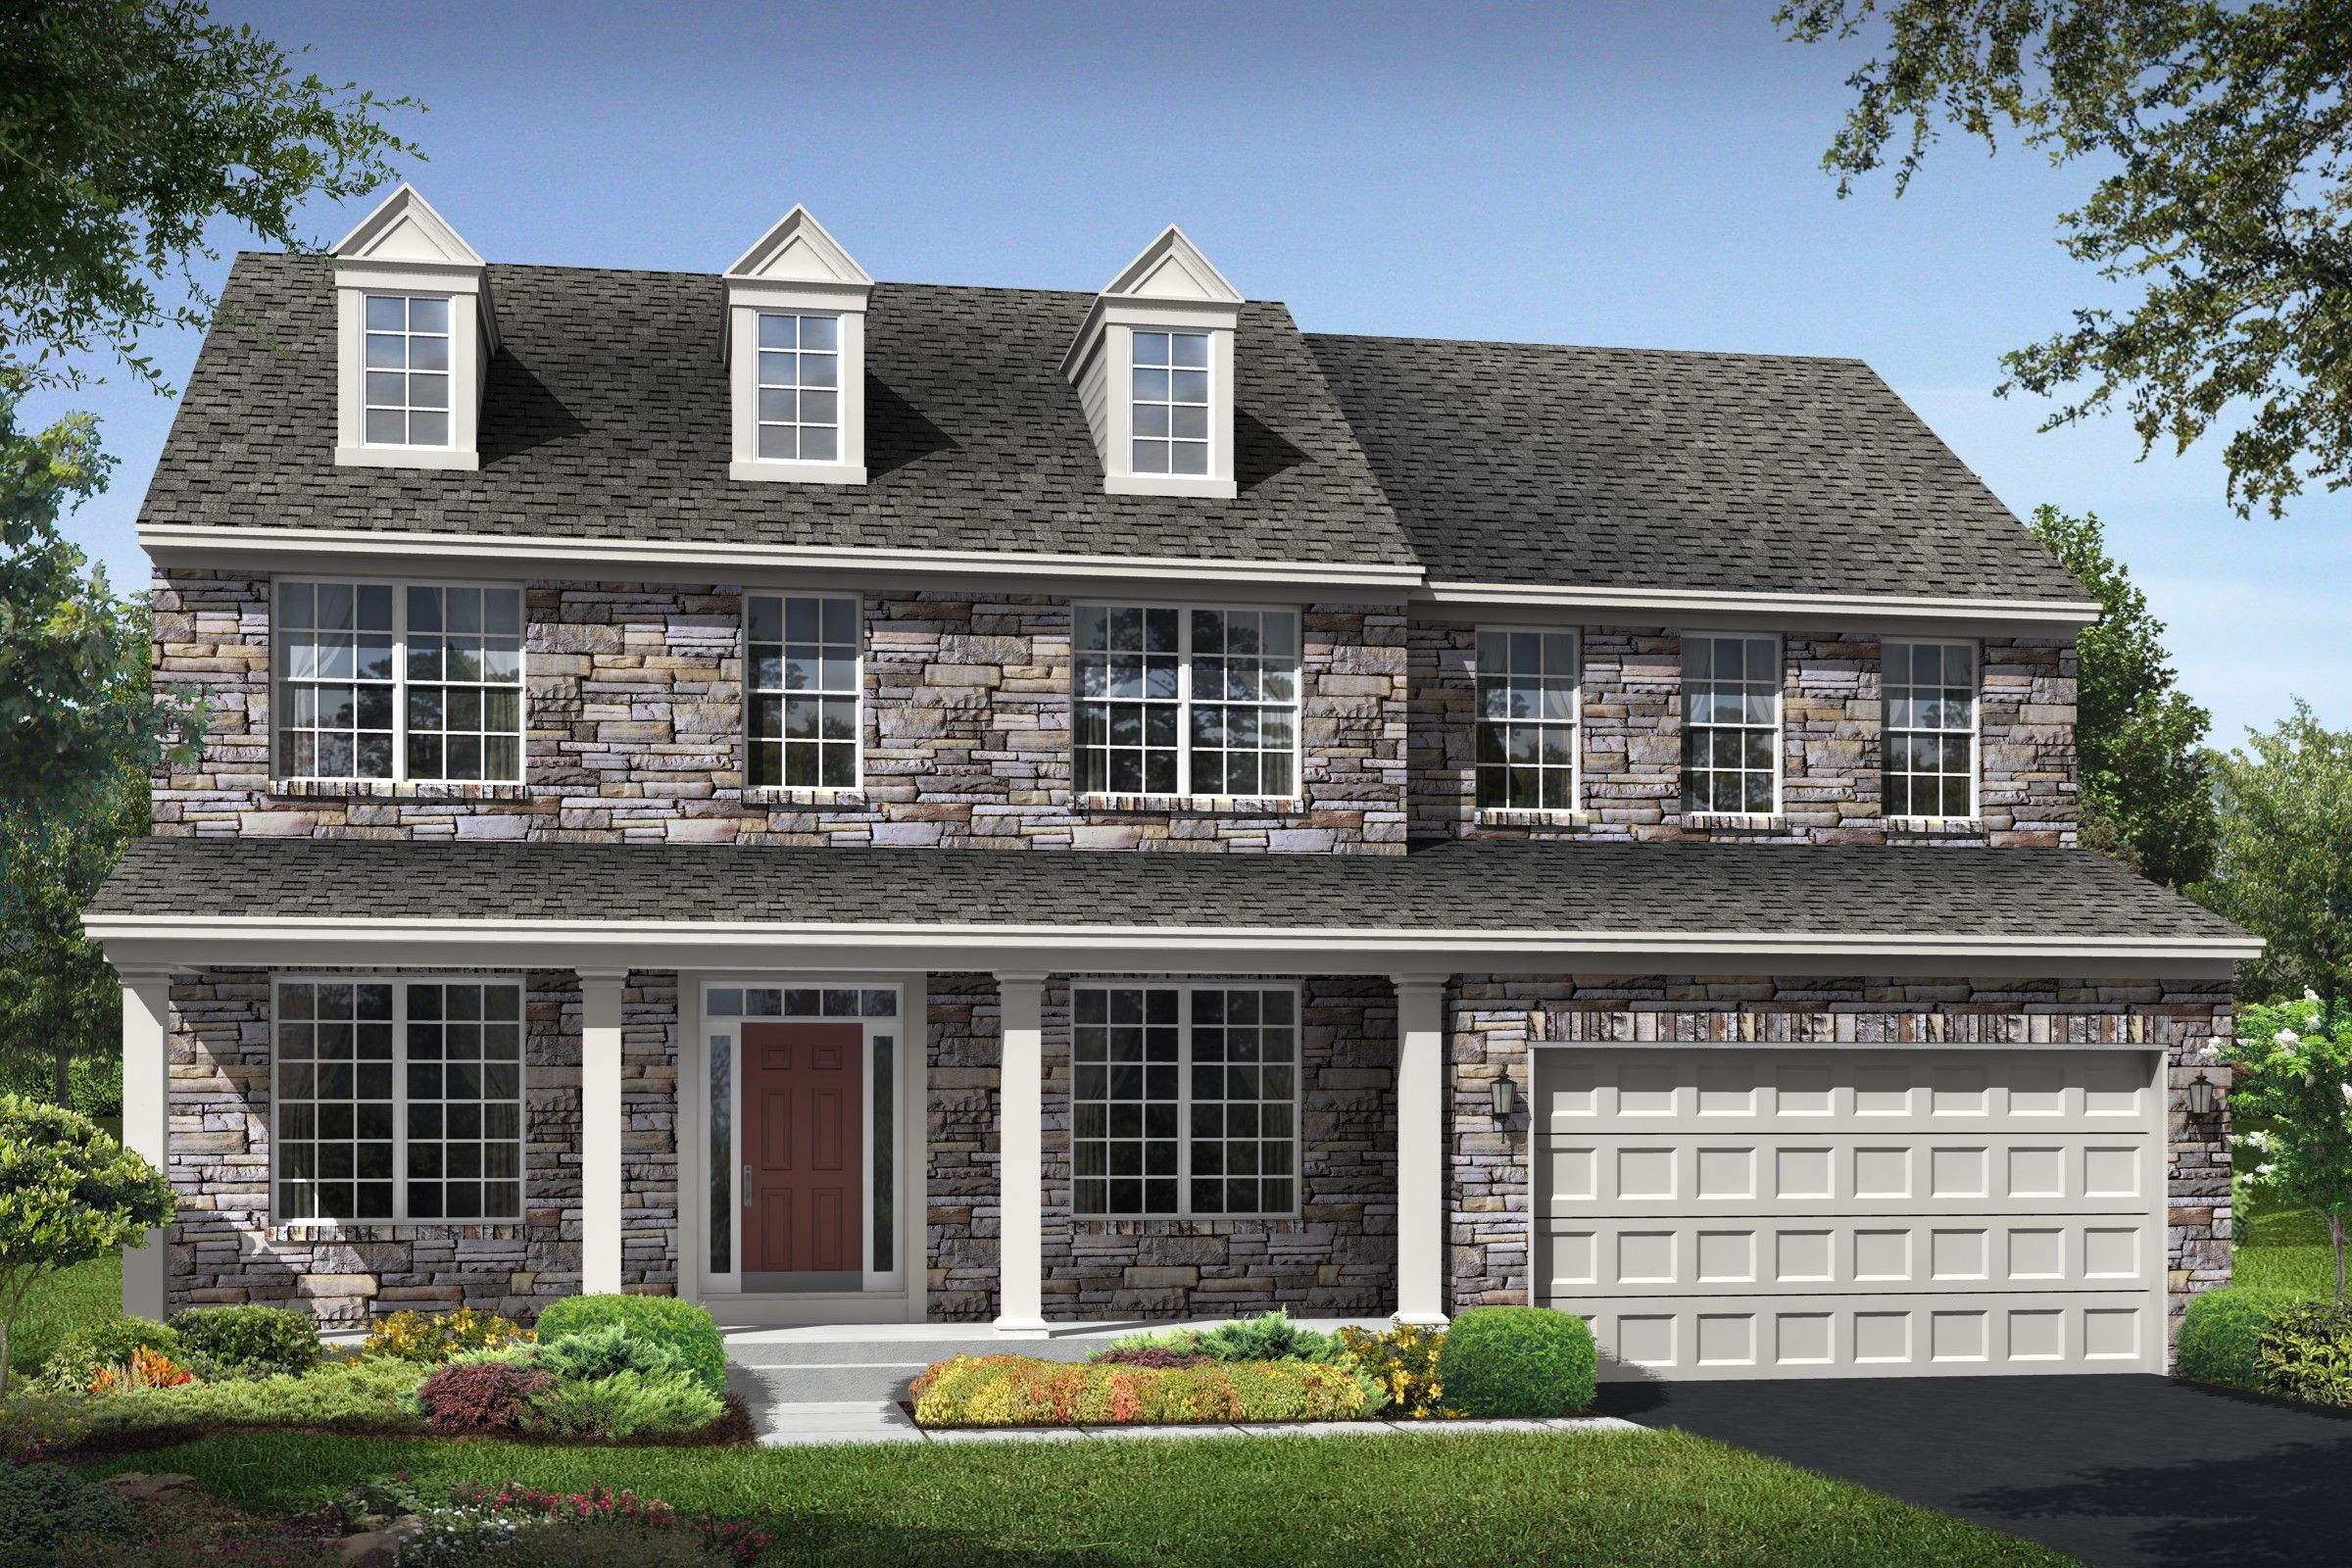 Delaware Plan at Cardinal View at Eagles Pointe in ...